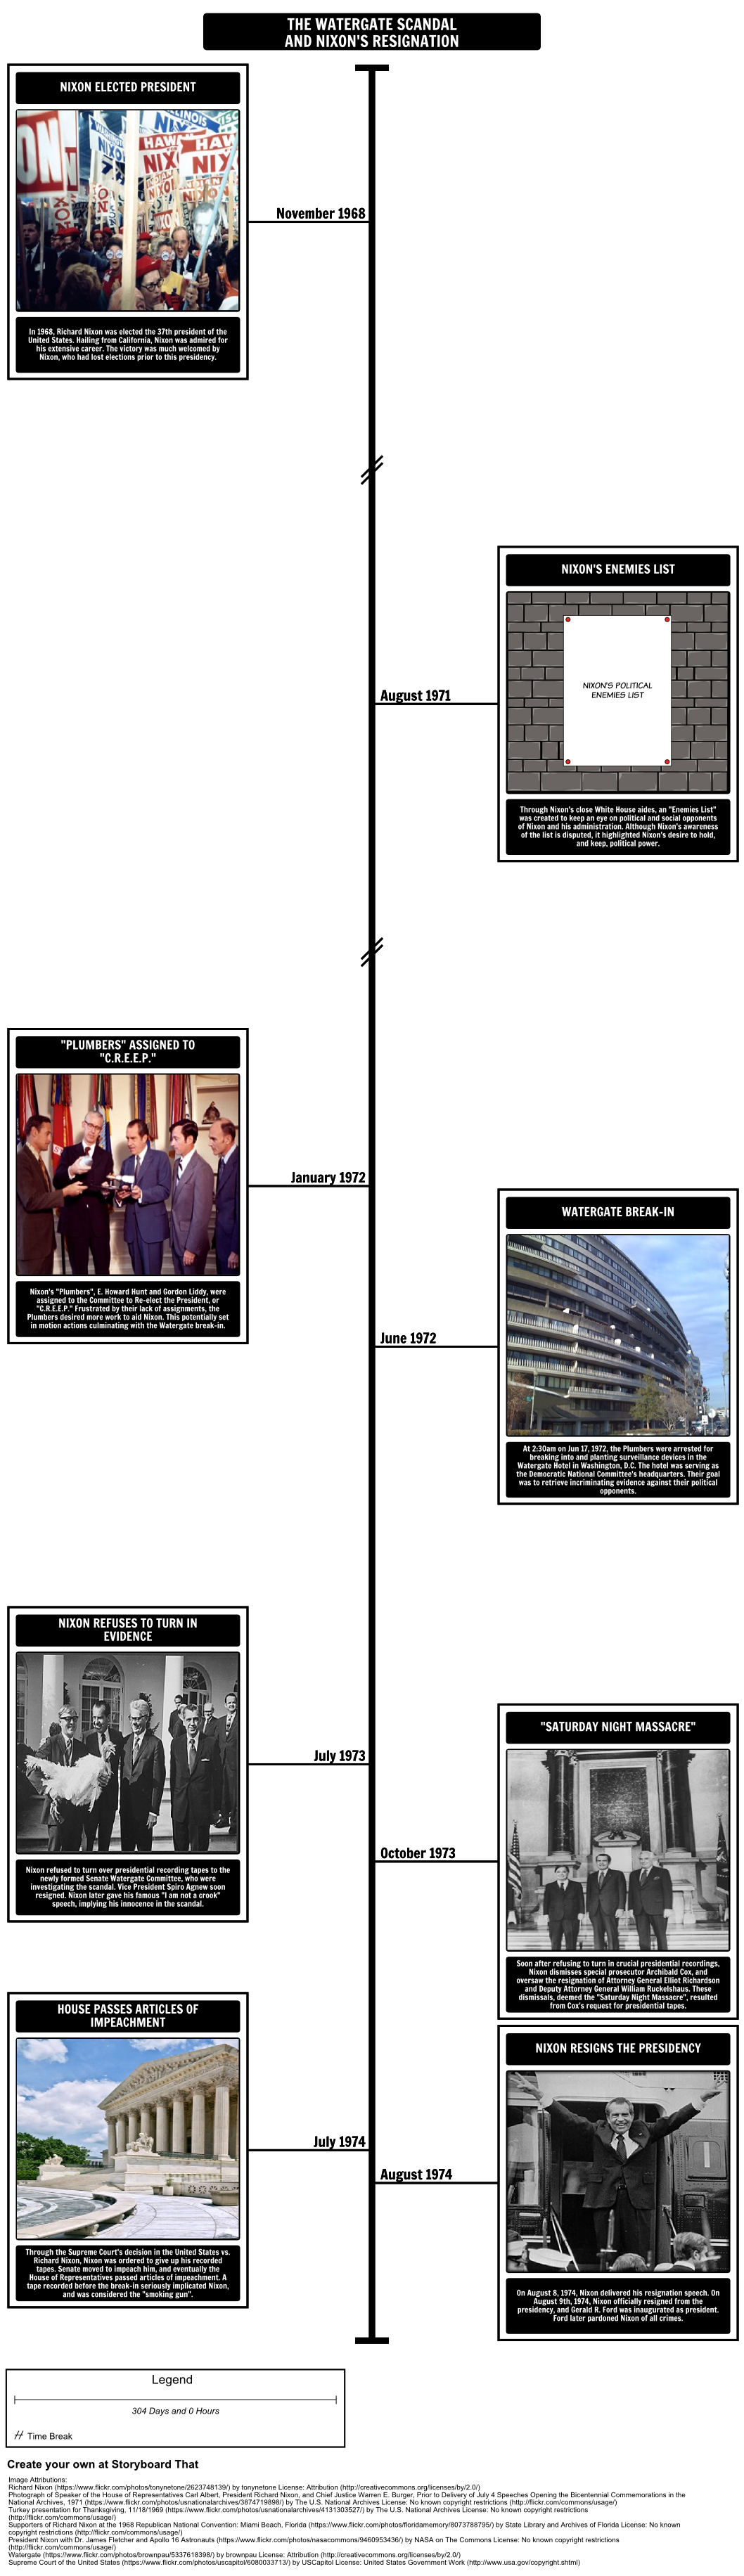 Richard Nixon - The Watergate Scandal and Nixon's Resignation: Have students create a timeline of the Watergate scandal. Students should highlight major events stemming from the break-in of the Democratic National Convention headquarters, to Nixon's eventual resignation as president.